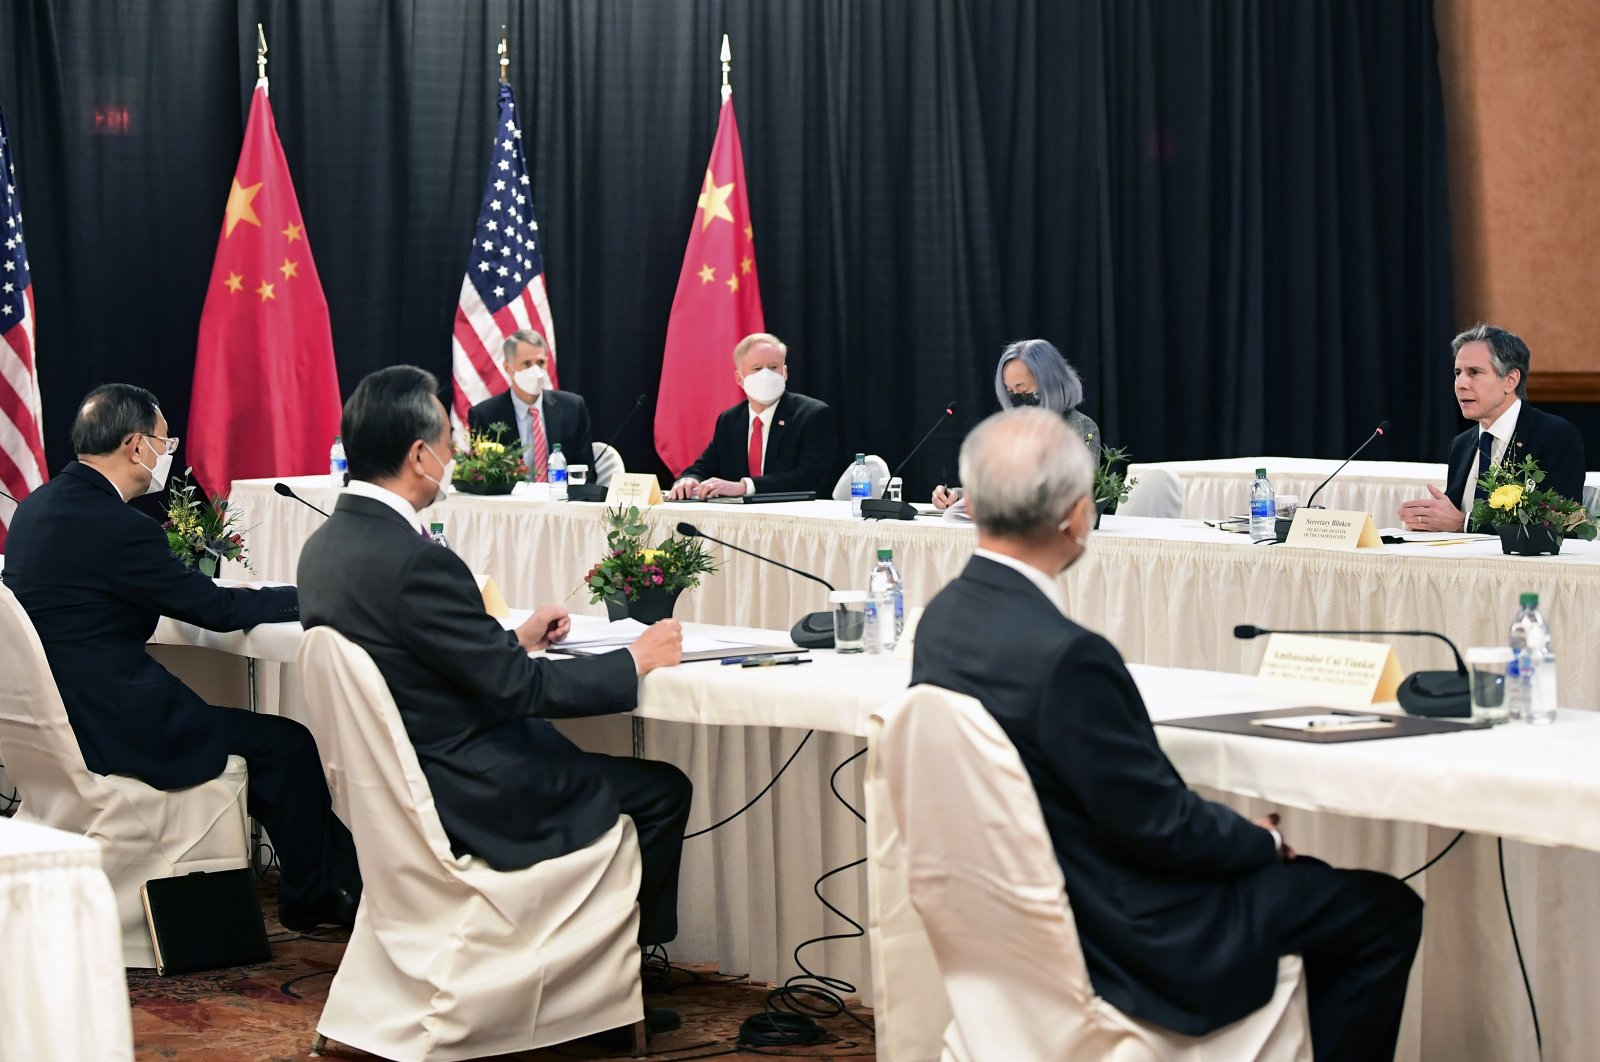 Secretary of State Antony Blinken, speaks as Chinese Communist Party foreign affairs chief Yang Jiechi, left, and China's State Councilor Wang Yi, second from left, listen at the opening session of U.S.-China talks at the Captain Cook Hotel in Anchorage, Alaska, Thursday, March 18, 2021. (AP Photo)